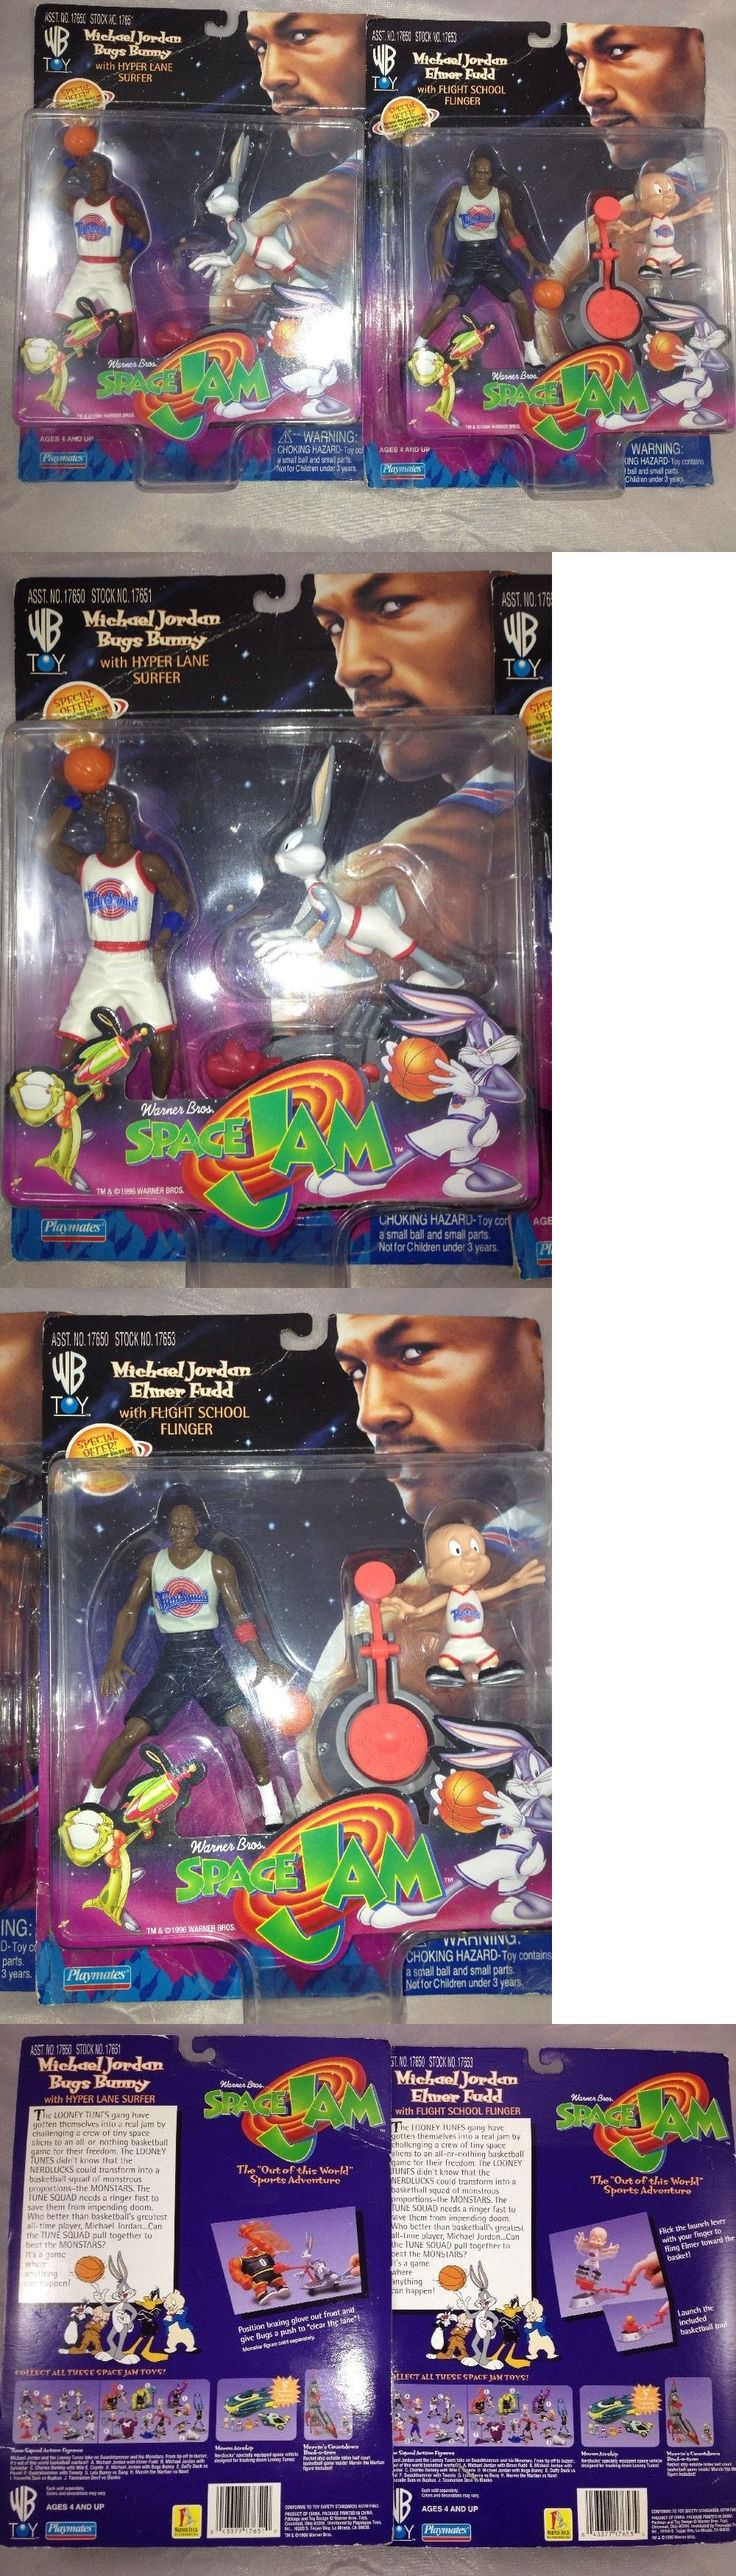 Warner Bros 19250: Michael Jordan 1996 Lot Of 2 Elmer Fudd And Bugs Bunny W Flinger And Surfer Toy Nib -> BUY IT NOW ONLY: $32.98 on eBay!